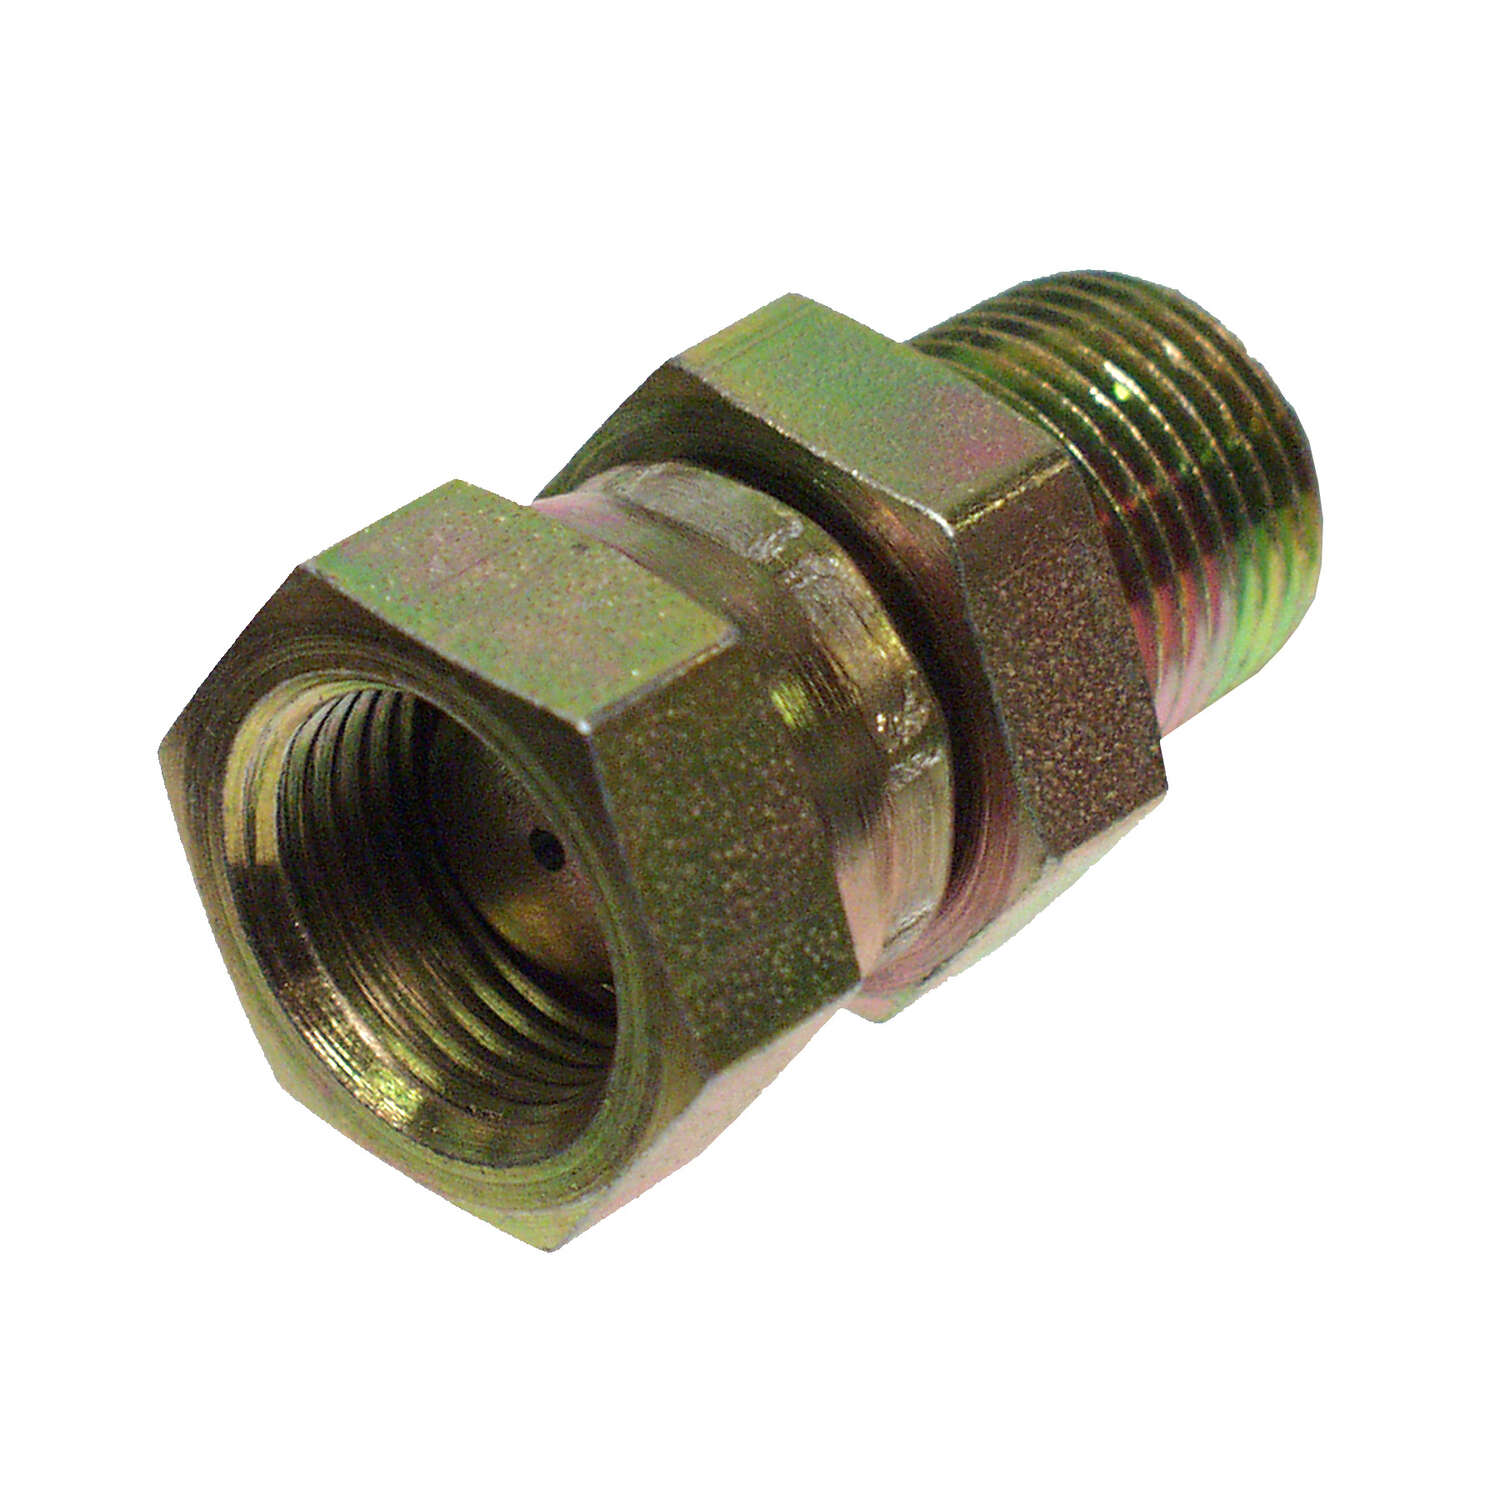 Apache Steel 1/2 in. Dia. x 1/2 in. Dia. Hydraulic Adapter 1 pk